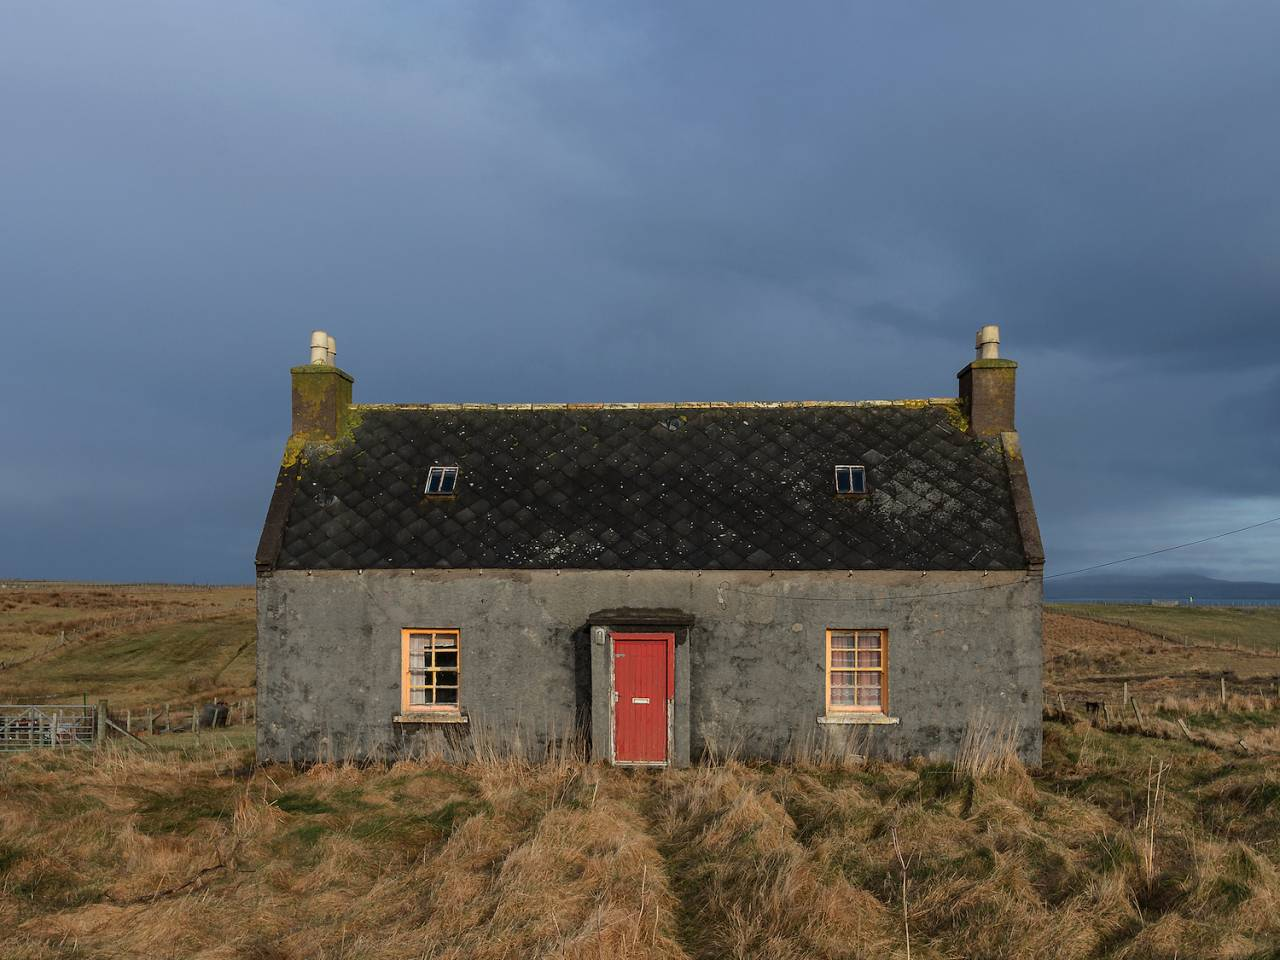 NOBODY'S HOME The symmetry of this house on the Isle of Lewis reminds me of the houses I used to paint and draw at primary school.